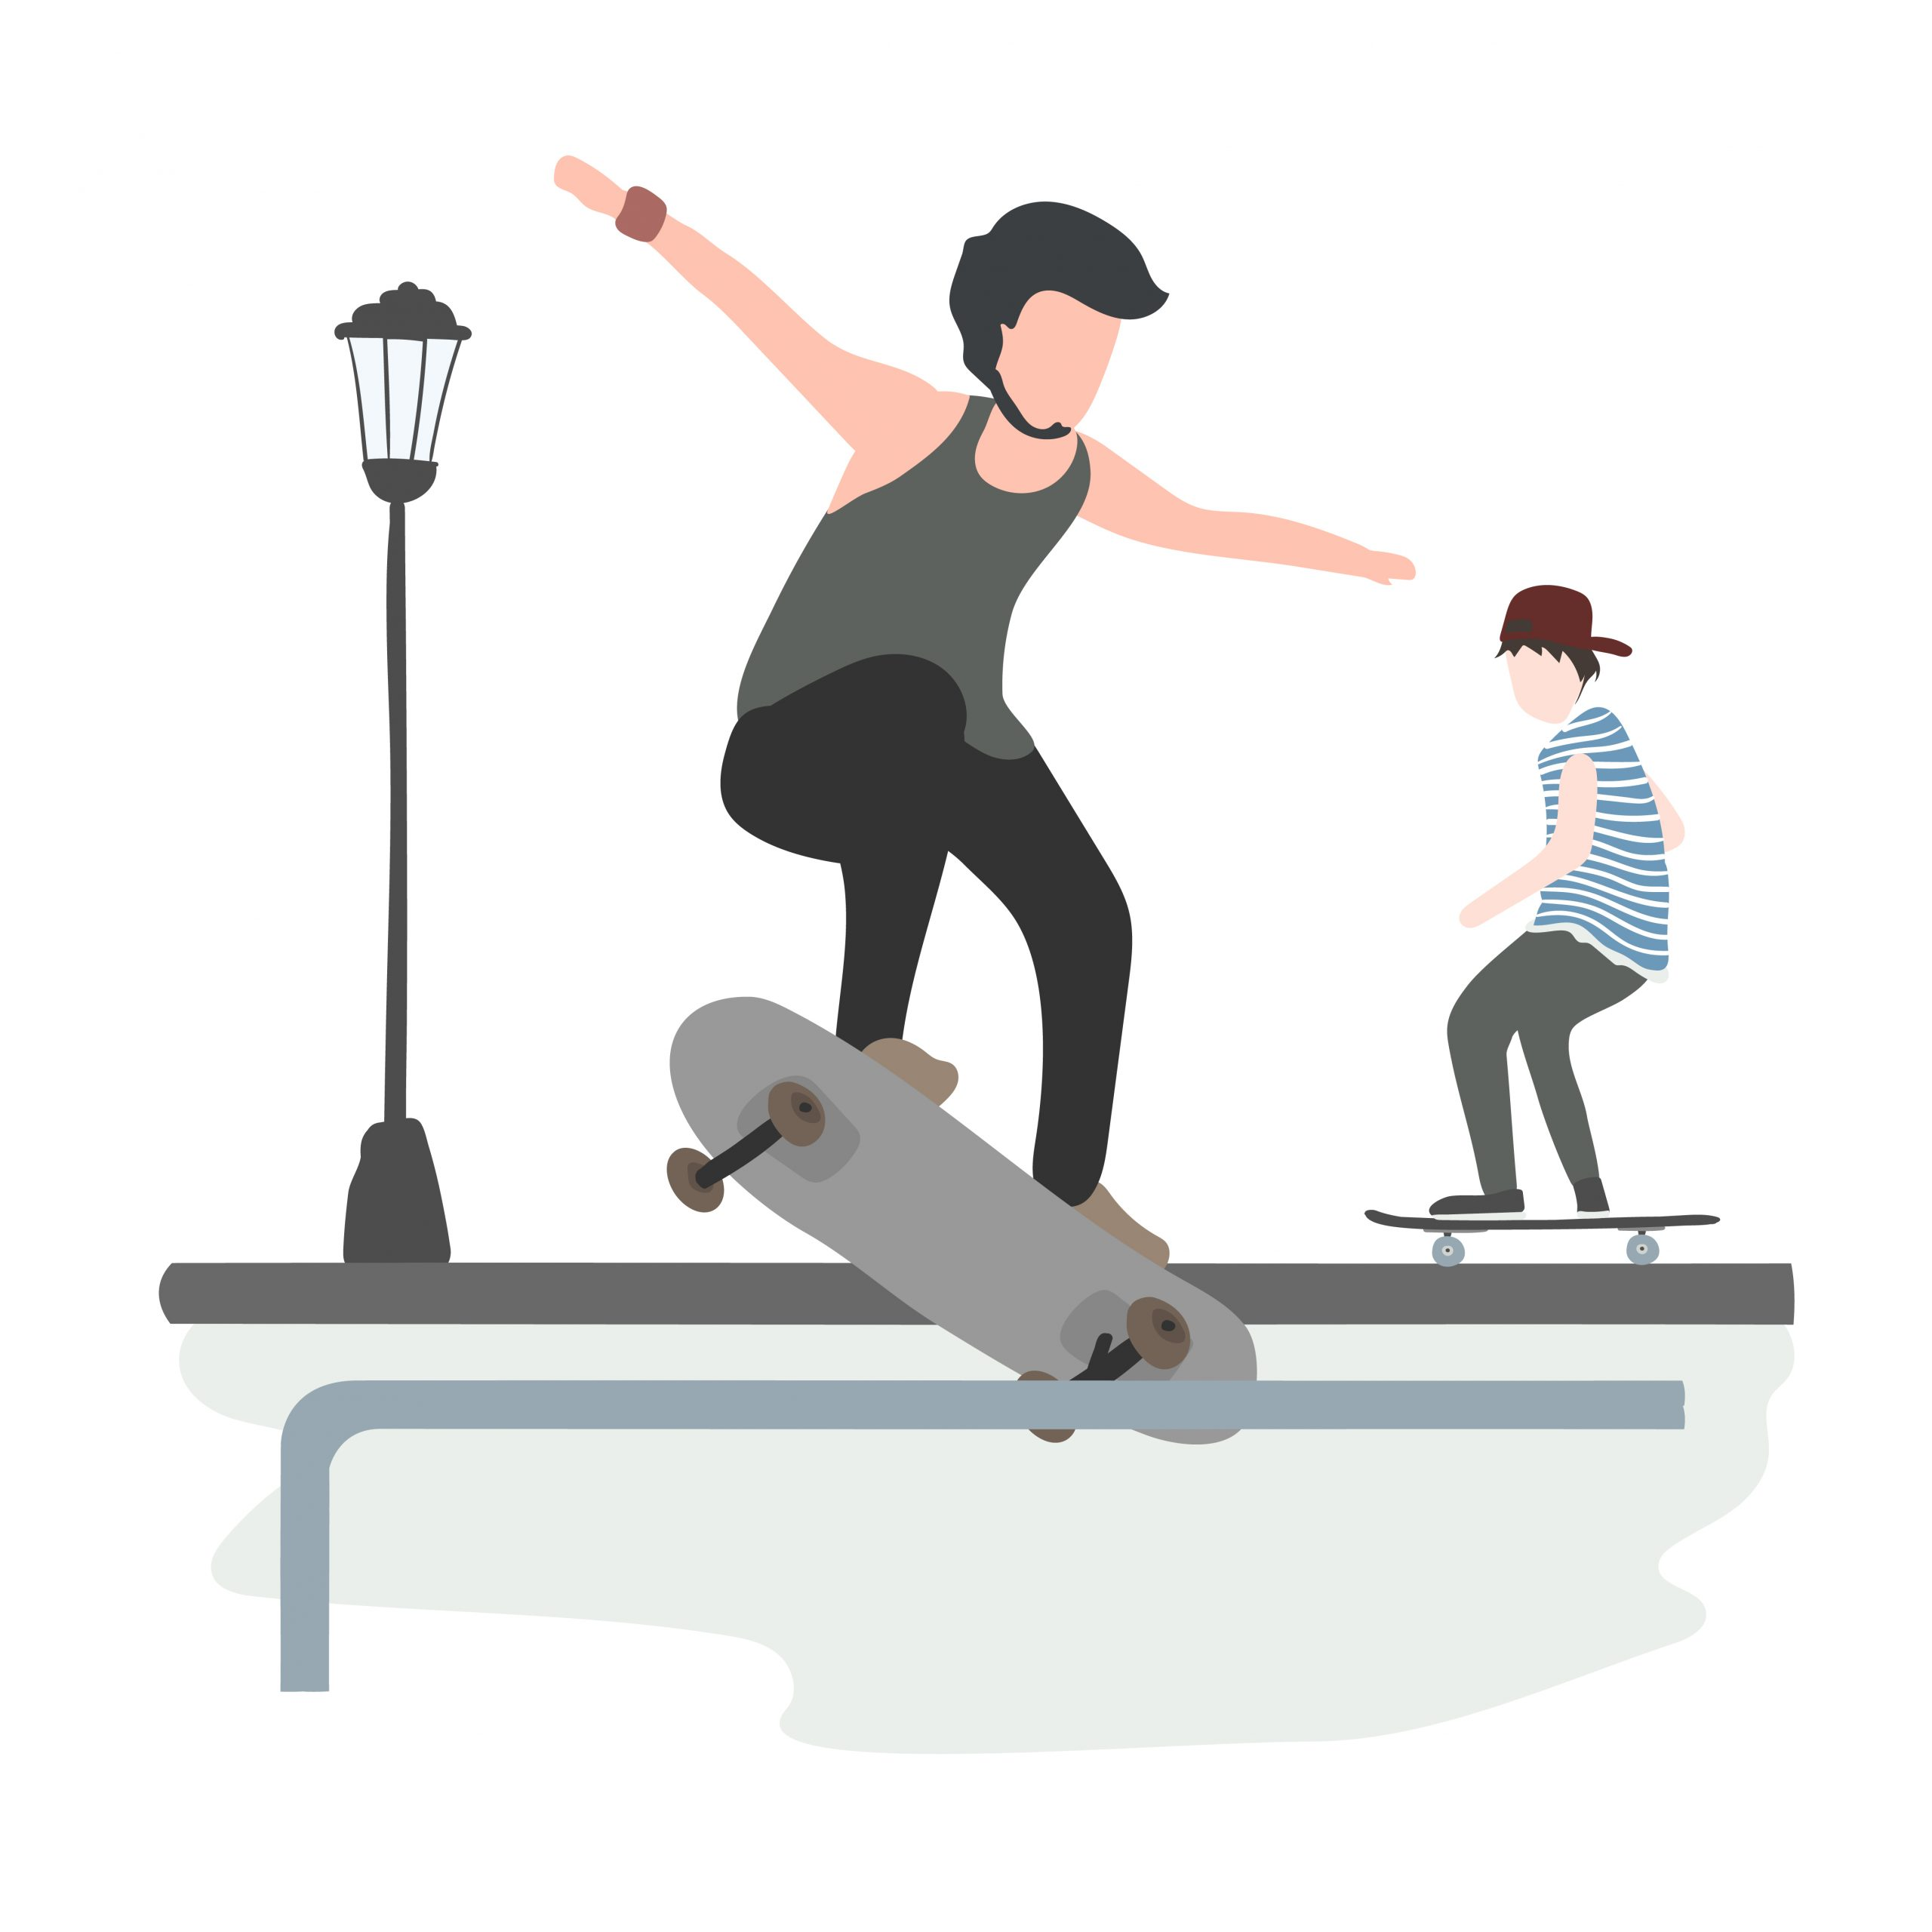 Top Skating Photography Tips in 2020